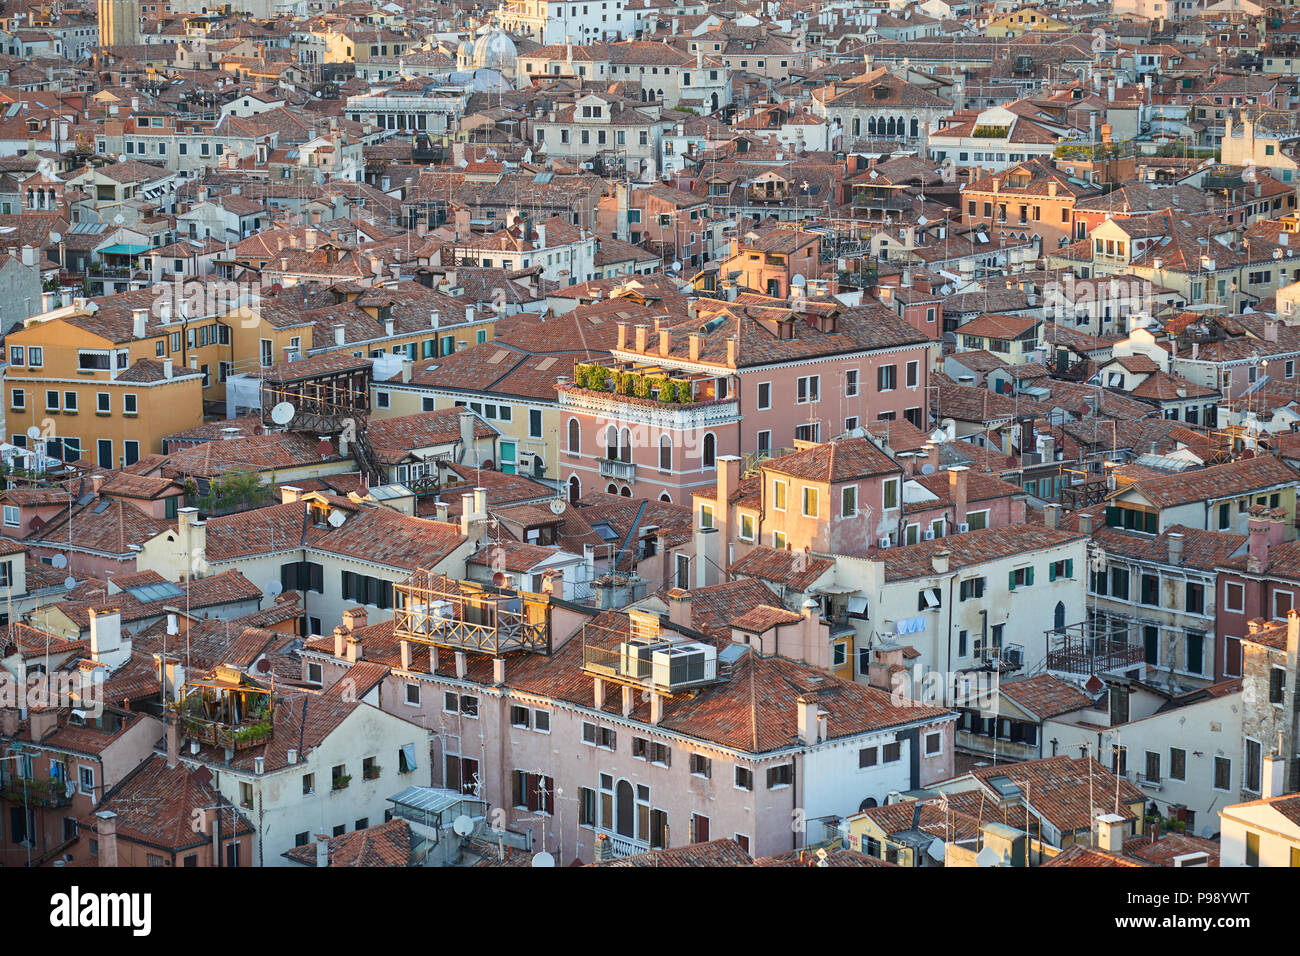 Aerial view of Venice rooftops before sunset, Italy - Stock Image